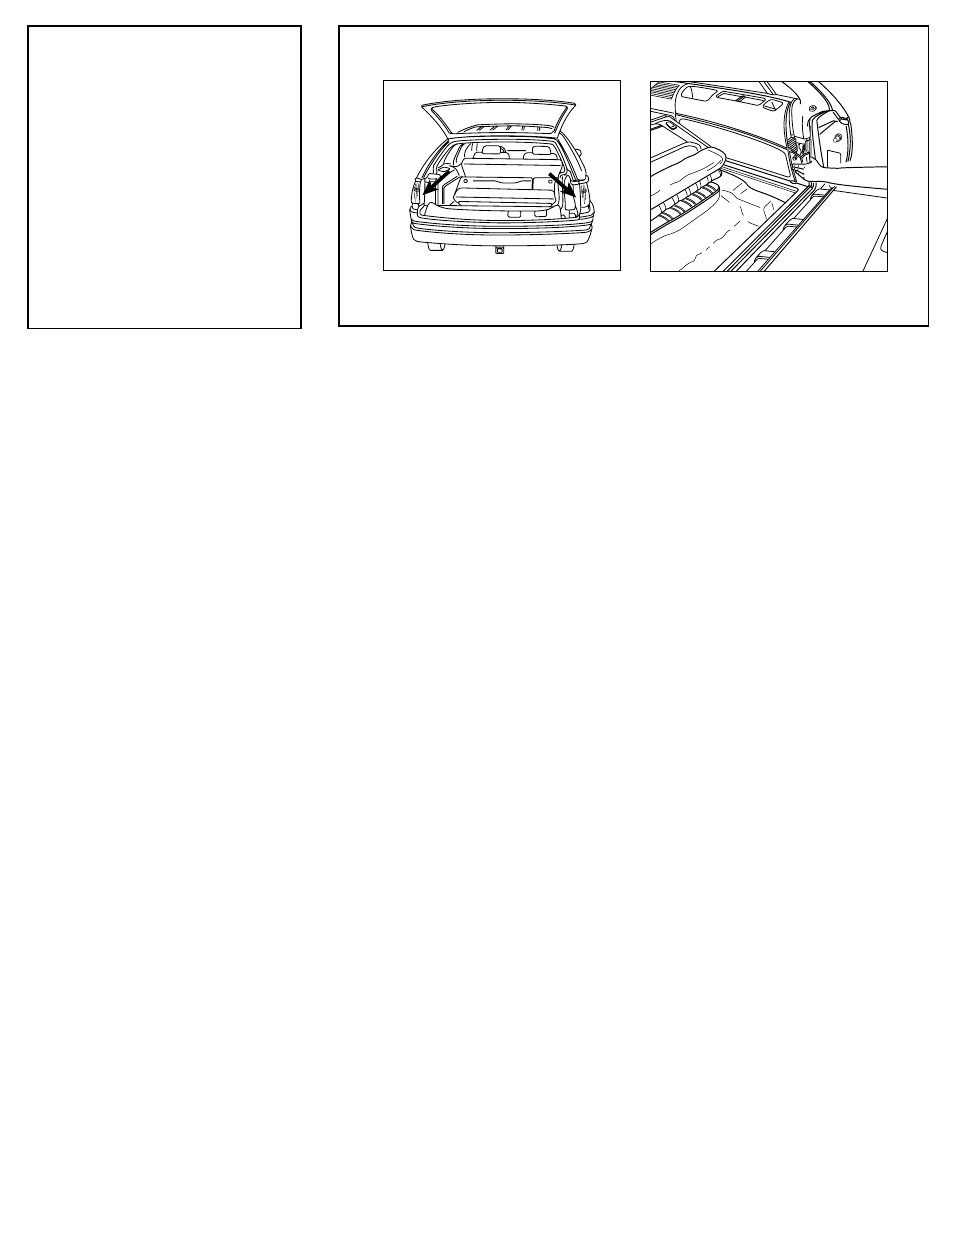 Draw-e 118352 T-ONE CONNECTOR User Manual | 1 page on